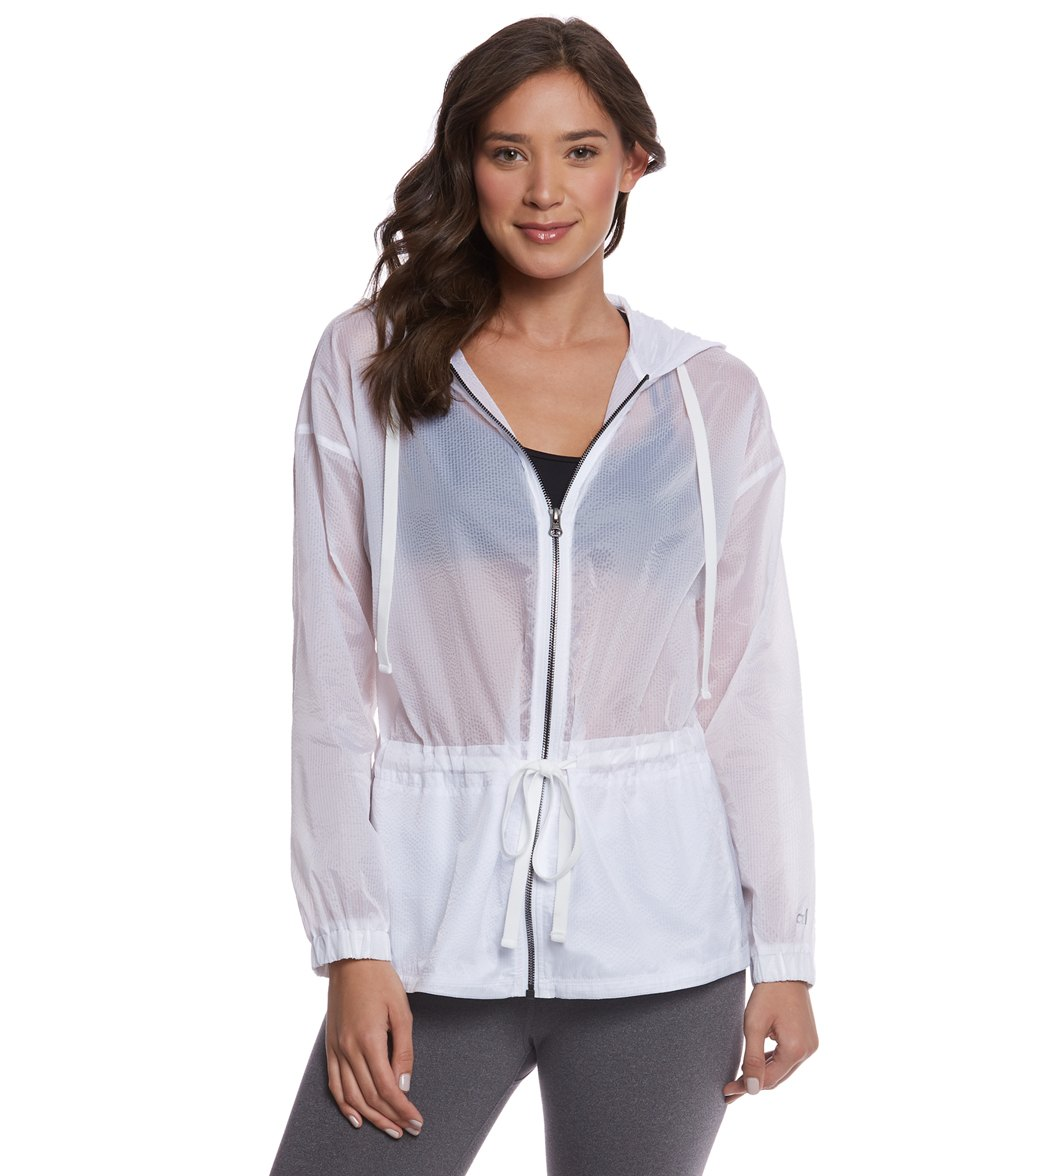 1fa158b7a Alo Yoga Hideaway Workout Jacket at YogaOutlet.com - Free Shipping